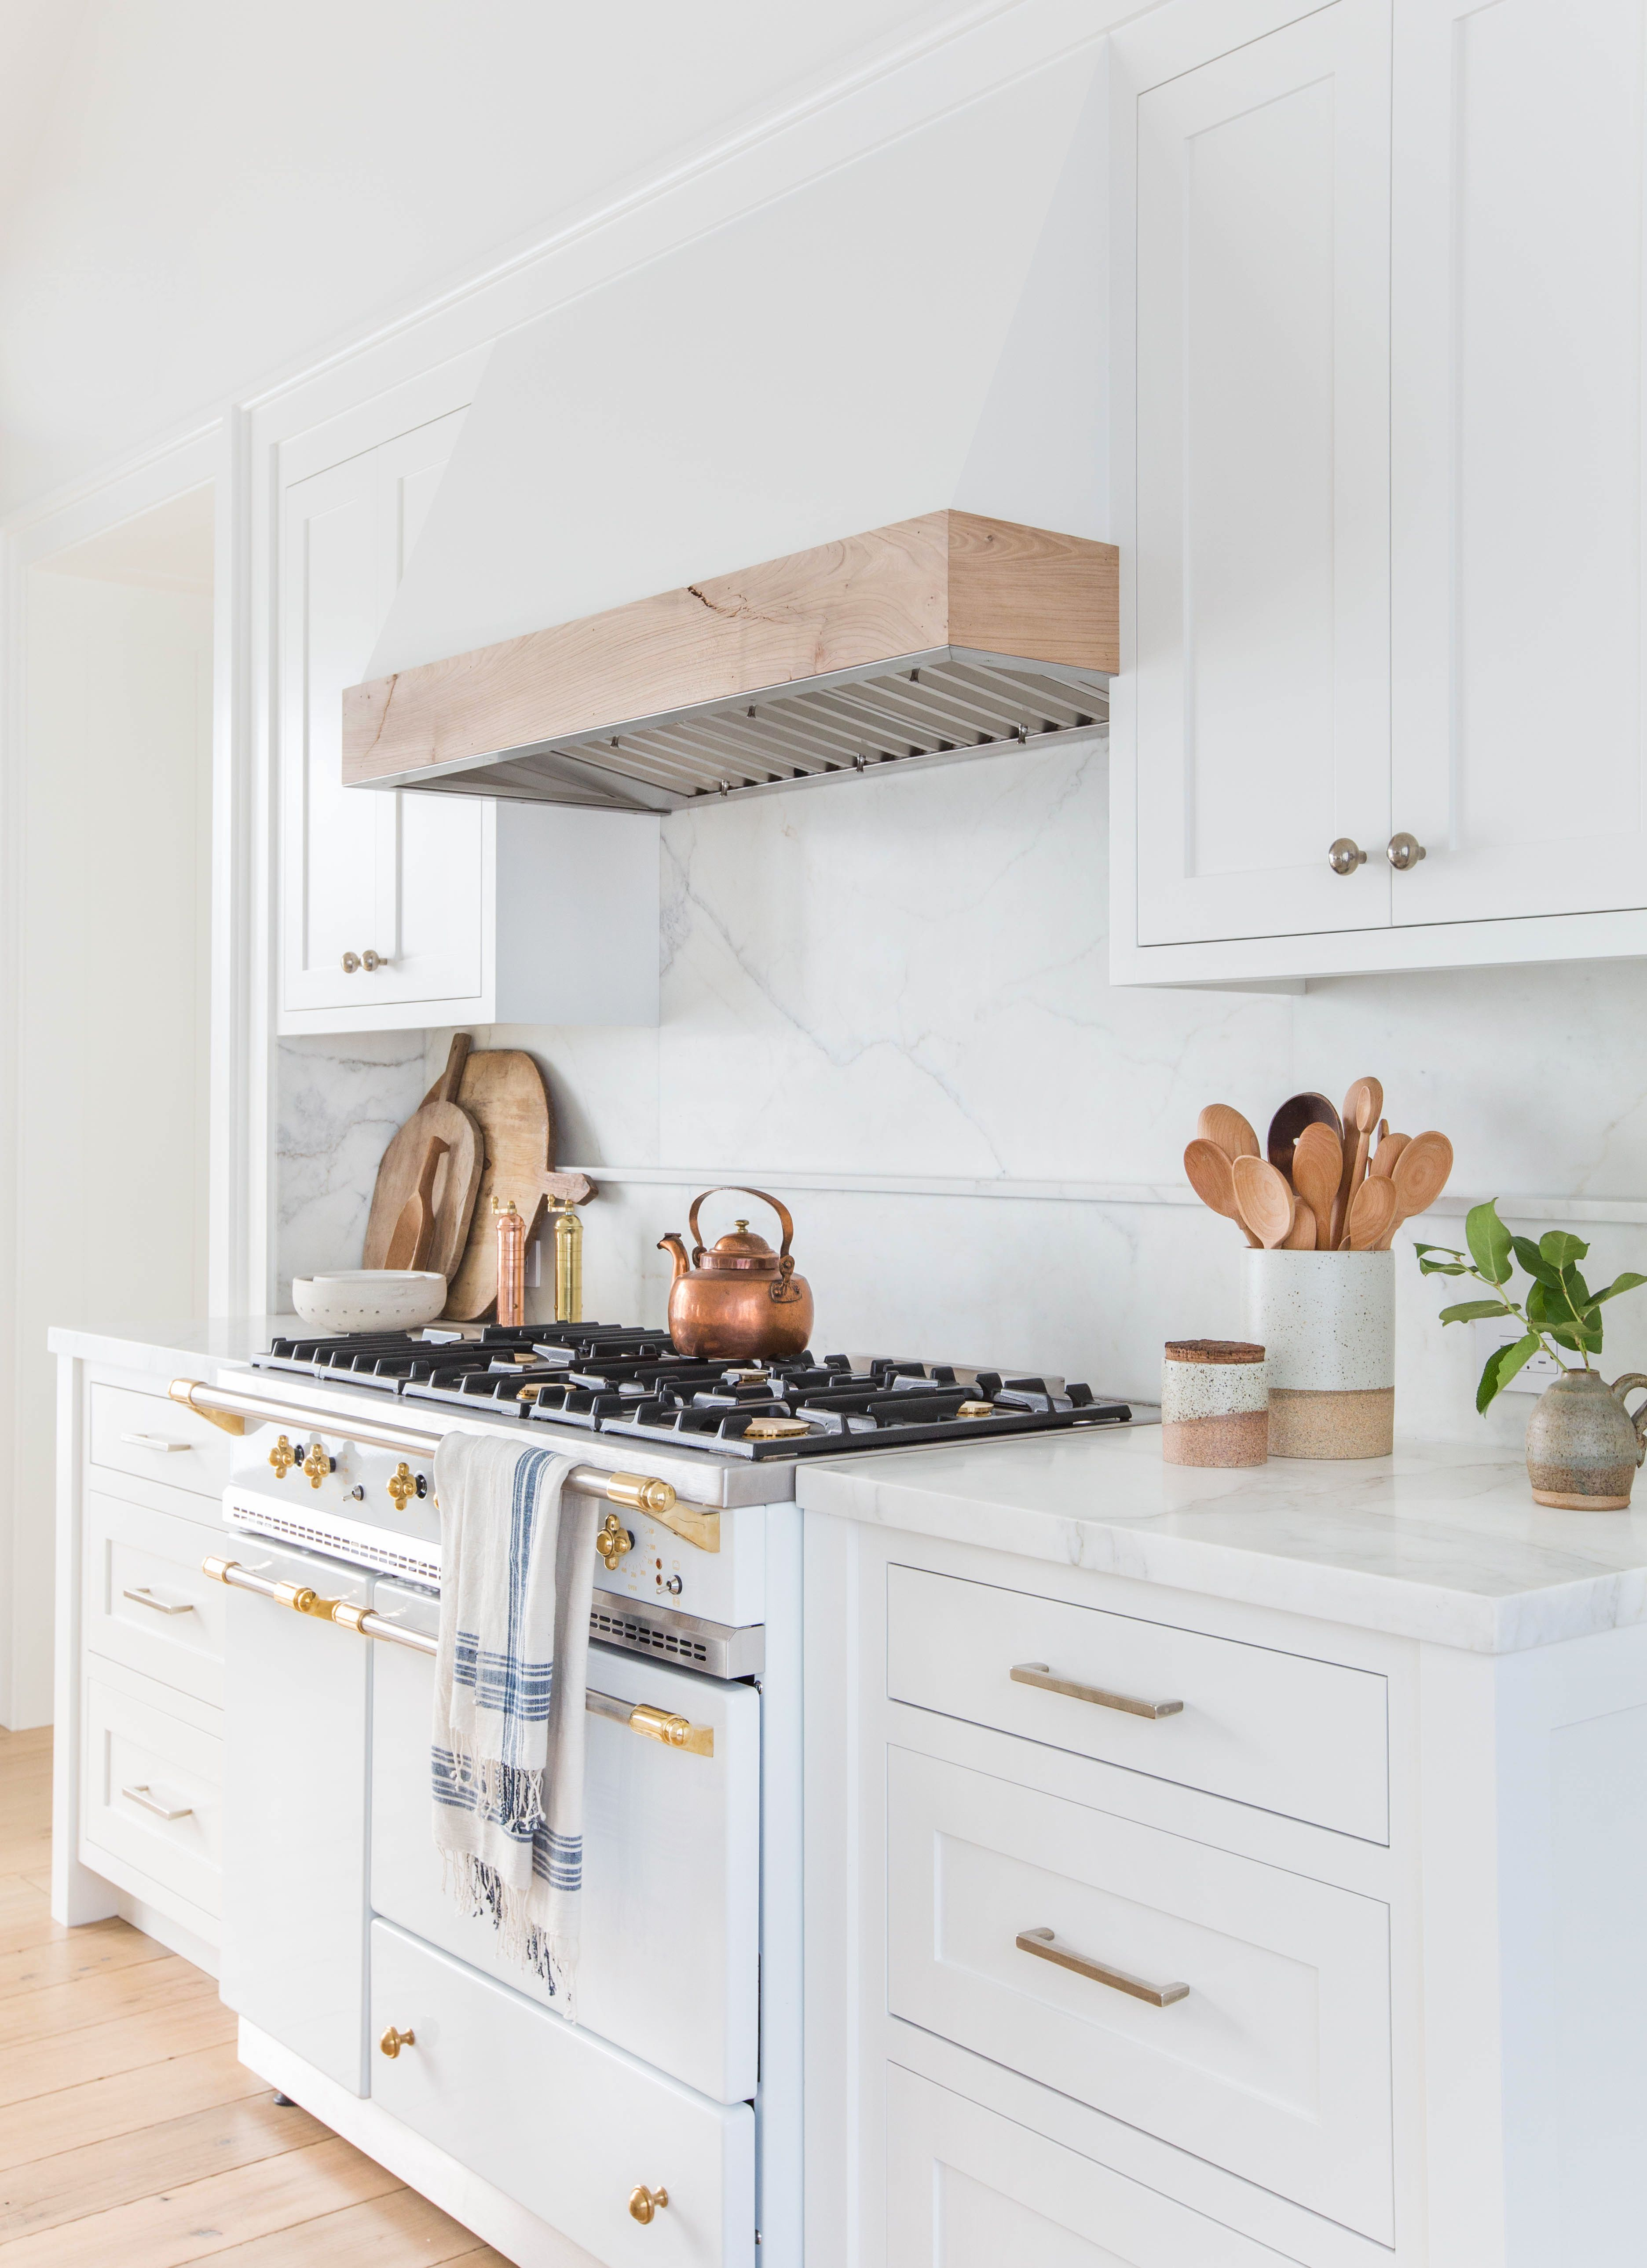 Courtesy of Tessa Neustadt. White kitchens ... & 17 White Kitchen Cabinet Ideas - Paint Colors and Hardware for ...